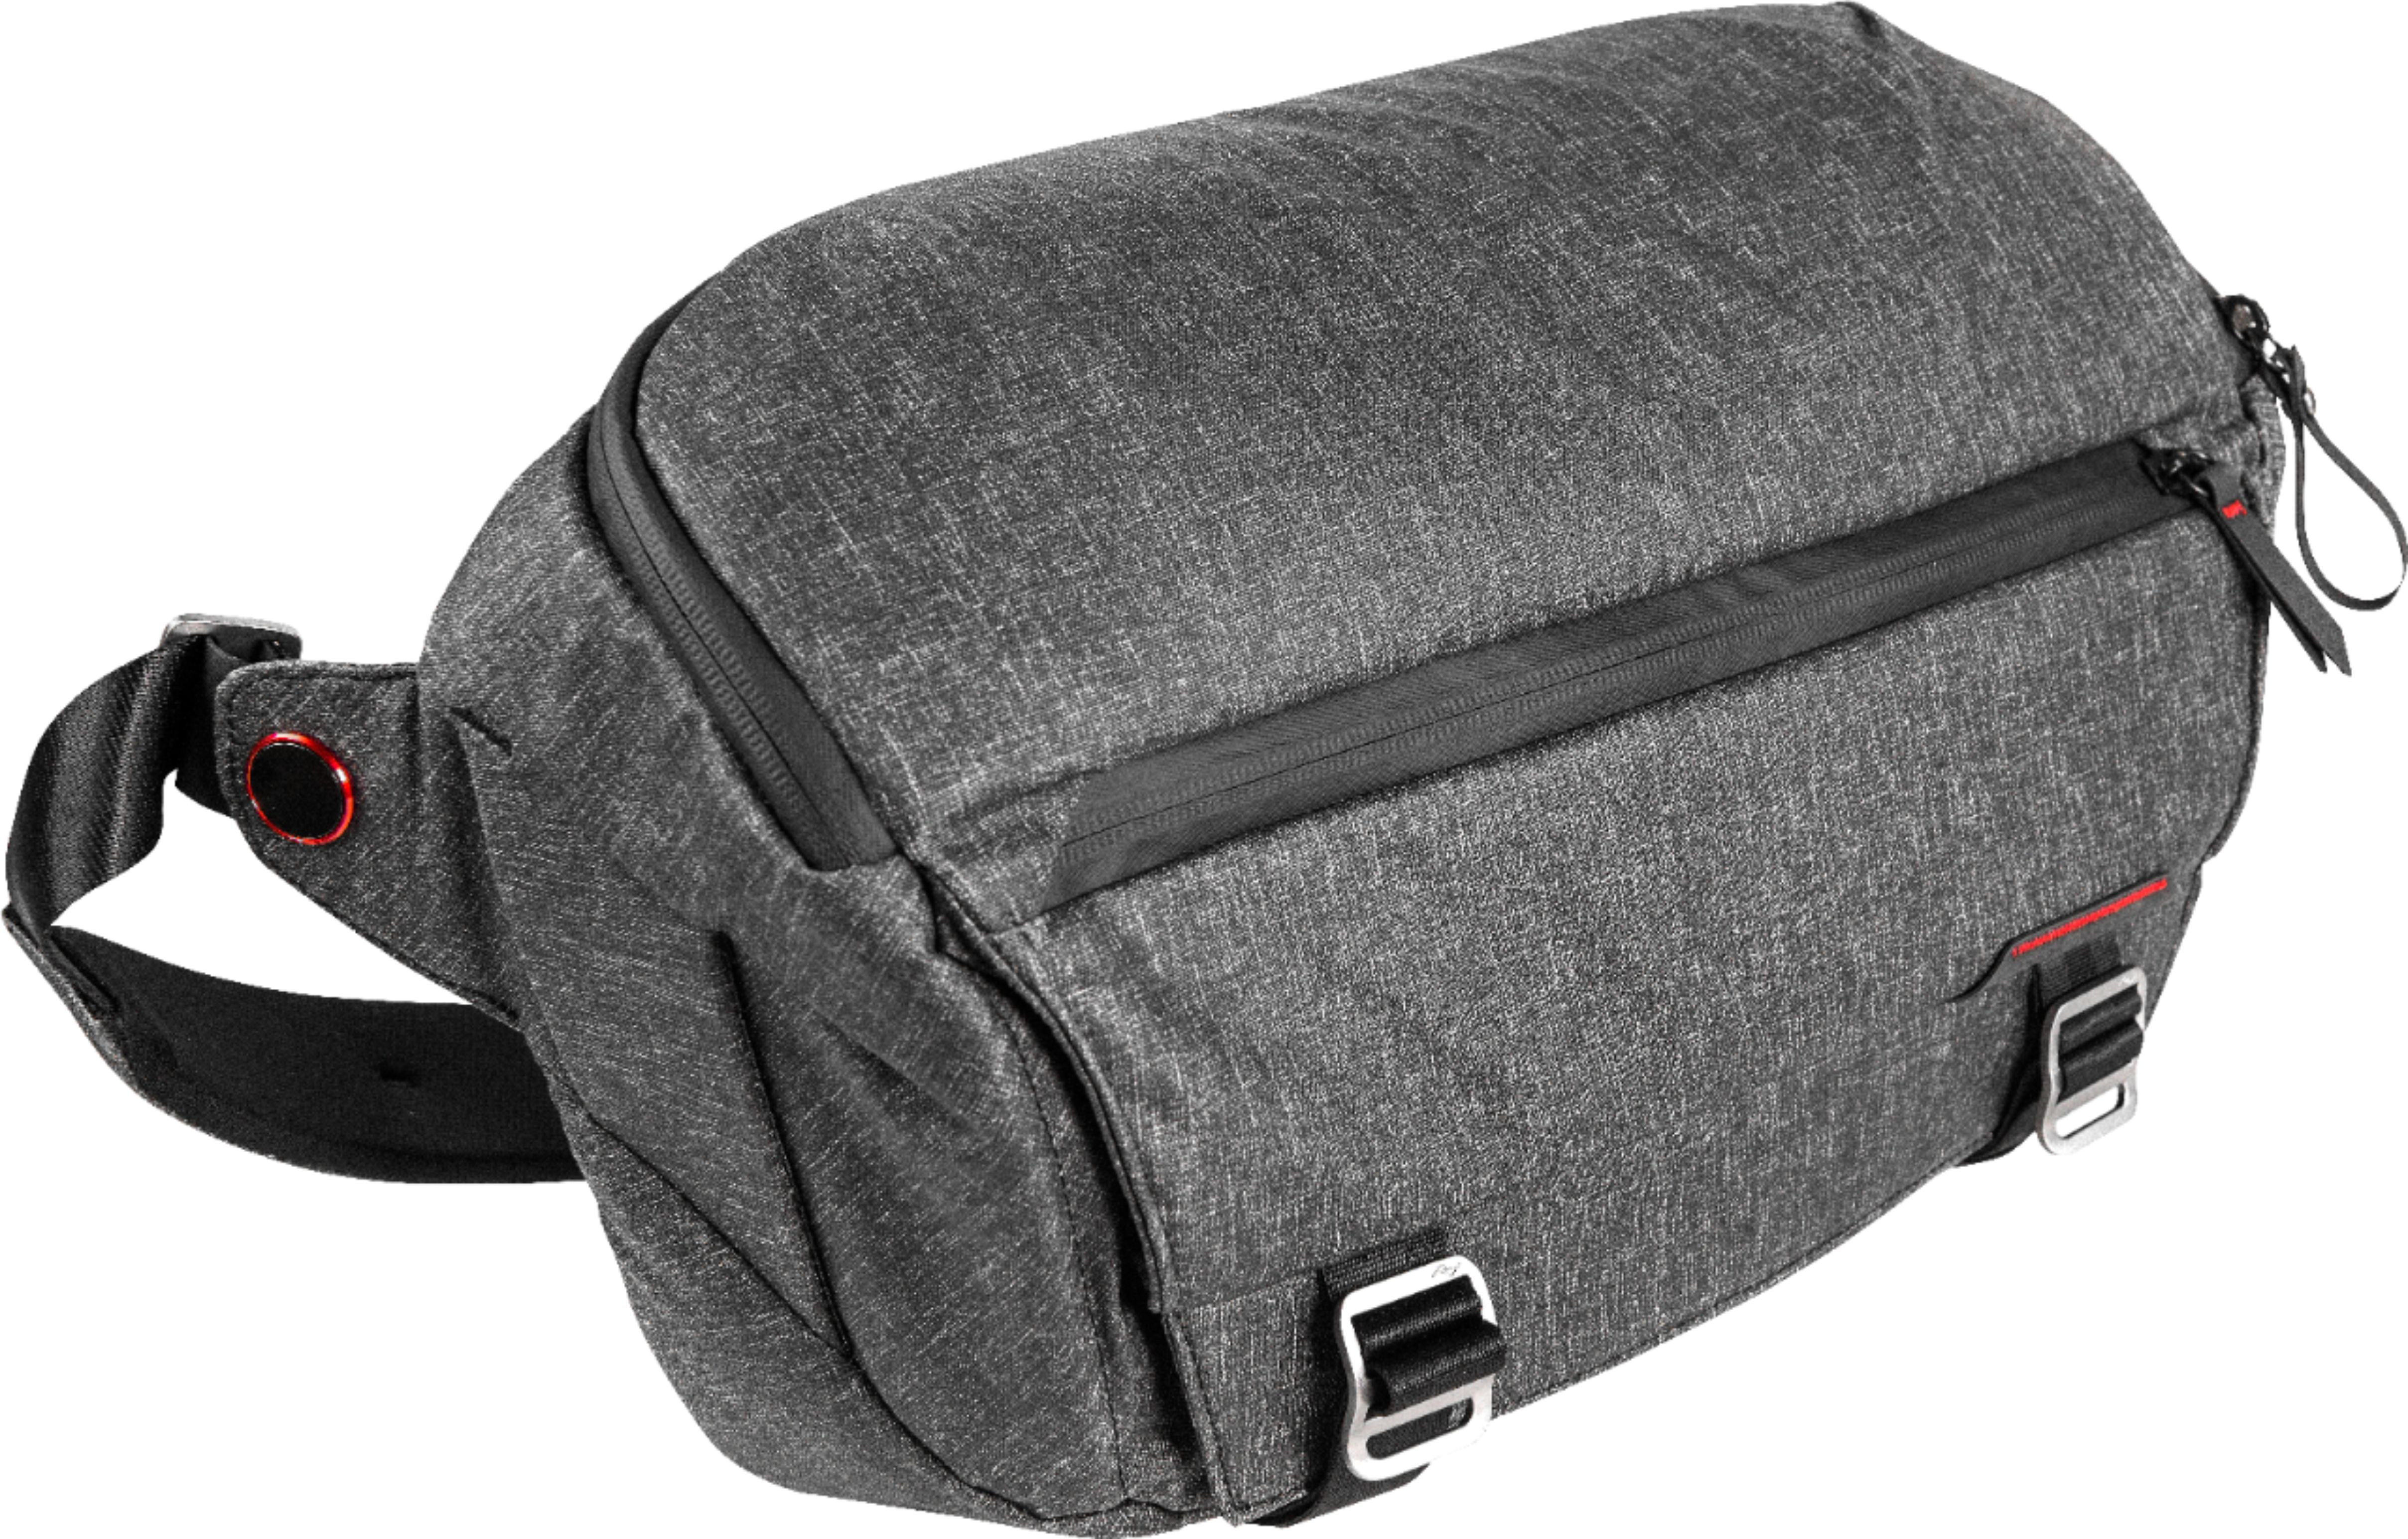 Peak Design Peak Design Camera Carrying Bag Charcoal